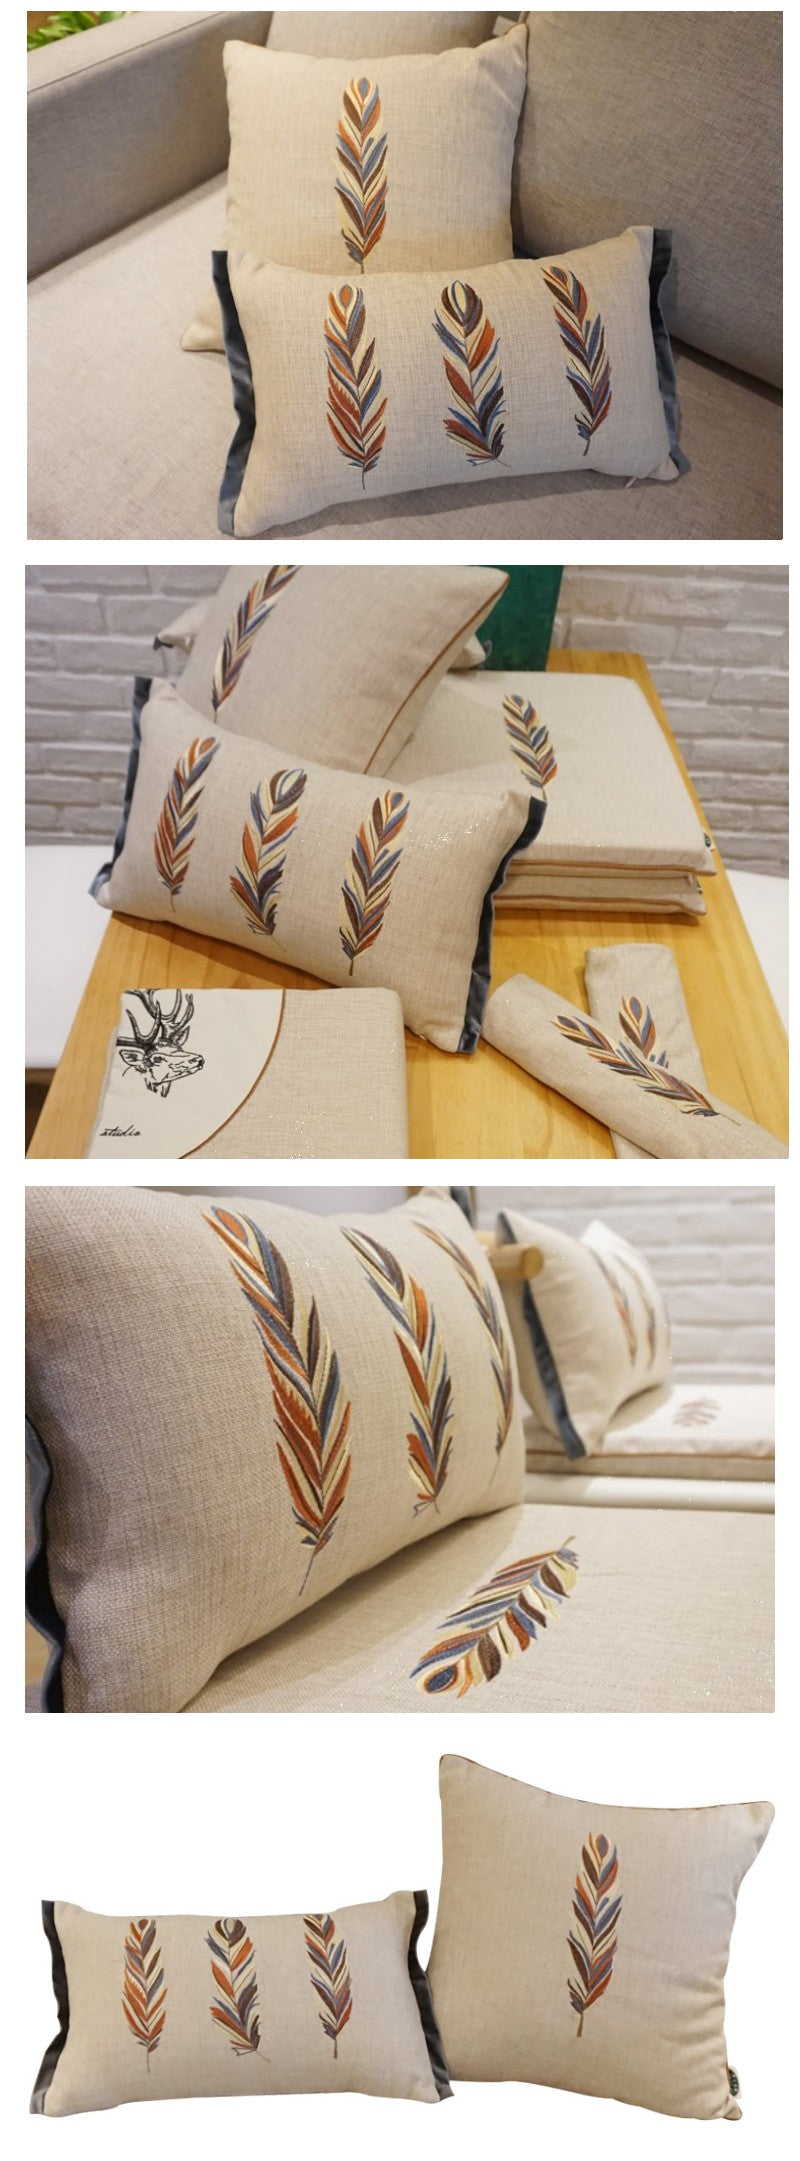 Embroider Feather Cotton and linen Pillow Cover, Decorative Throw Pillow, Sofa Pillows, Home Decor